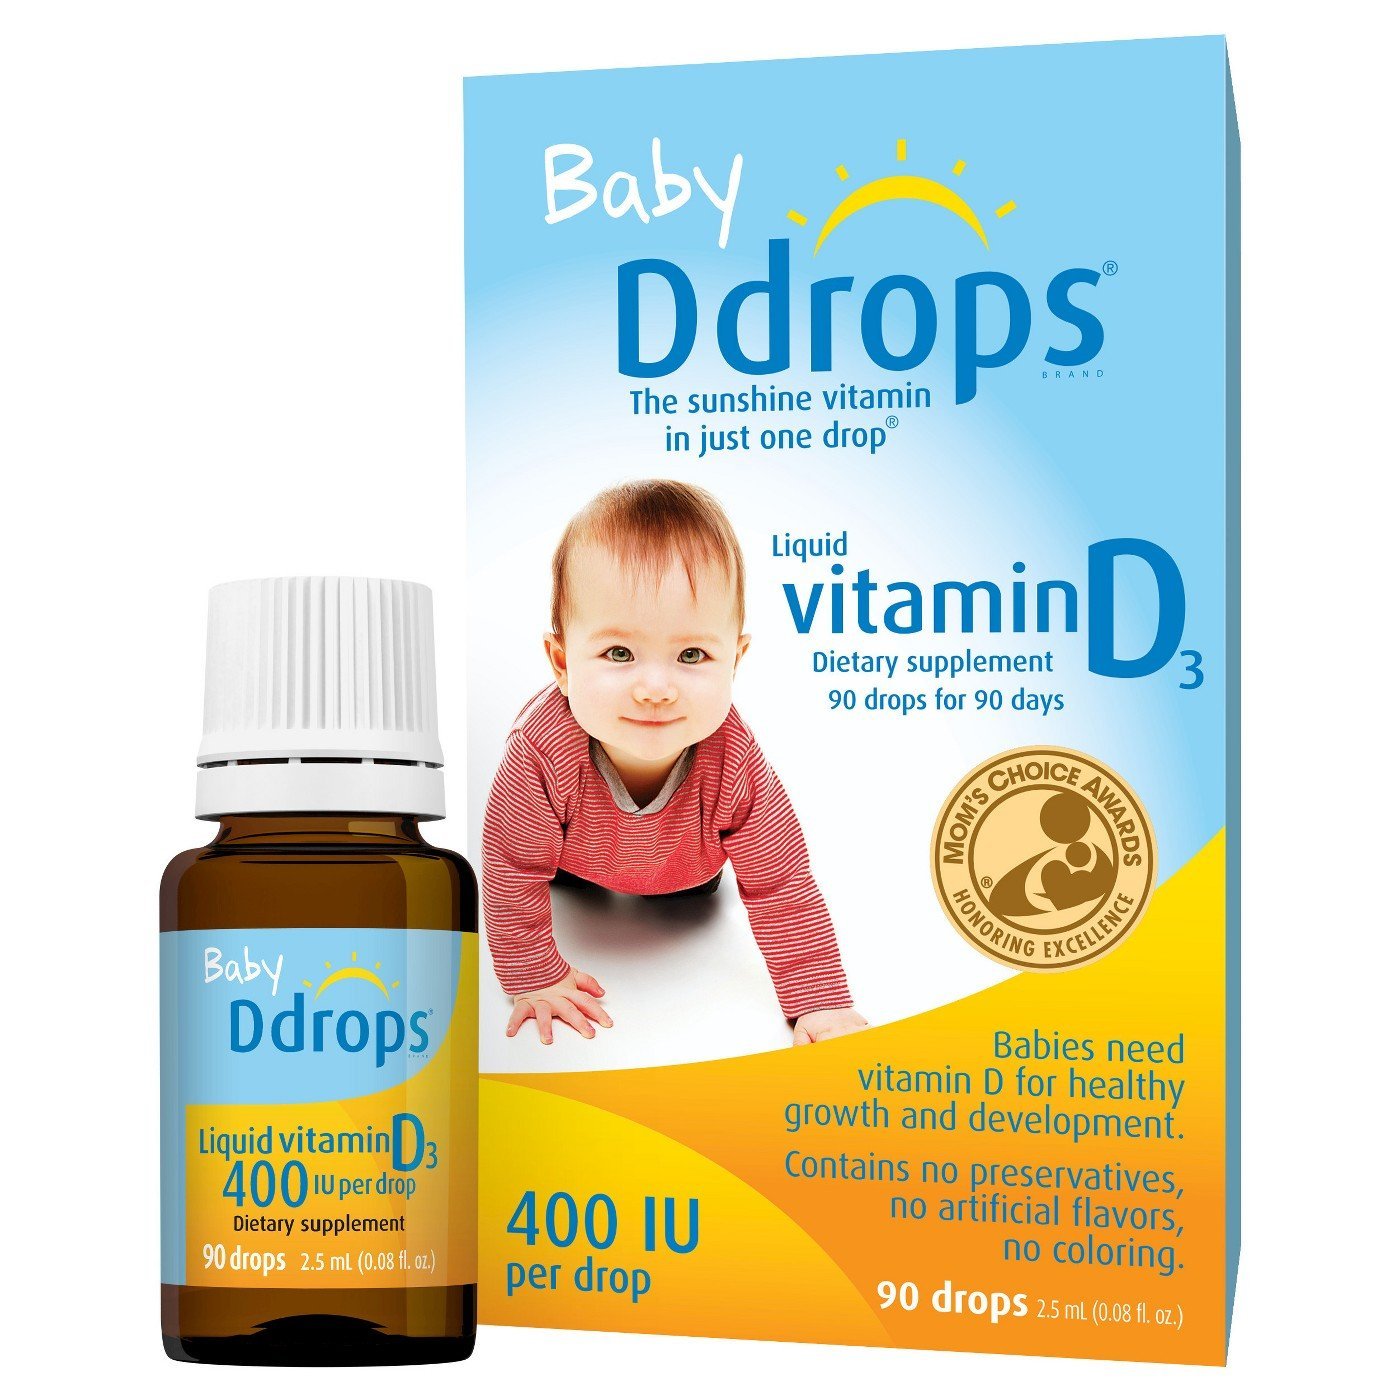 Ddrops Baby Liquid Vitamin D3 400 IU 2.50 mL (90 drops) (Pack of 10)